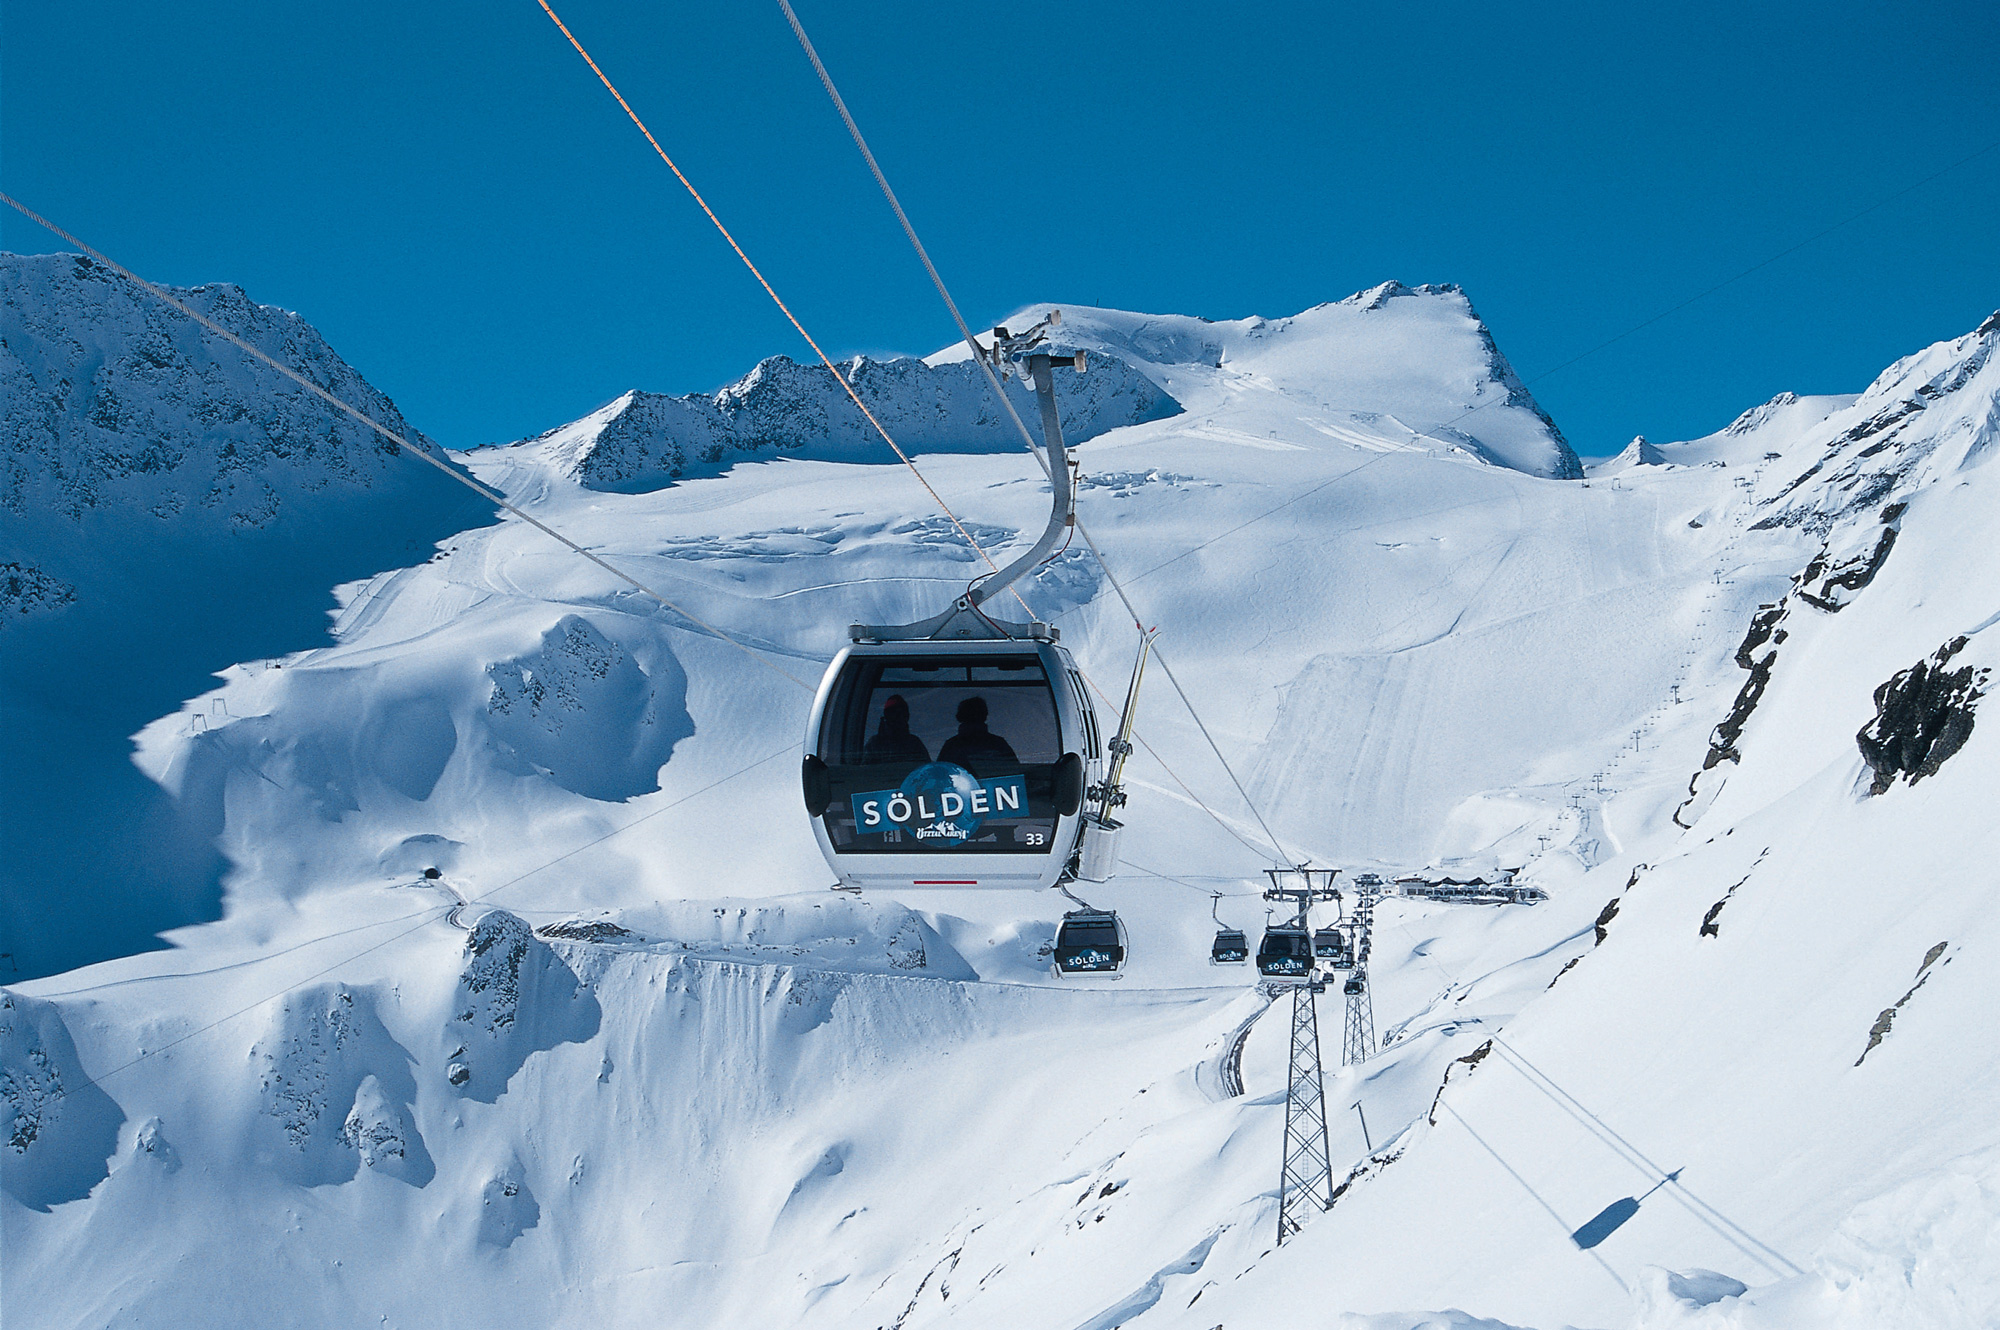 Soelden Ski Resort